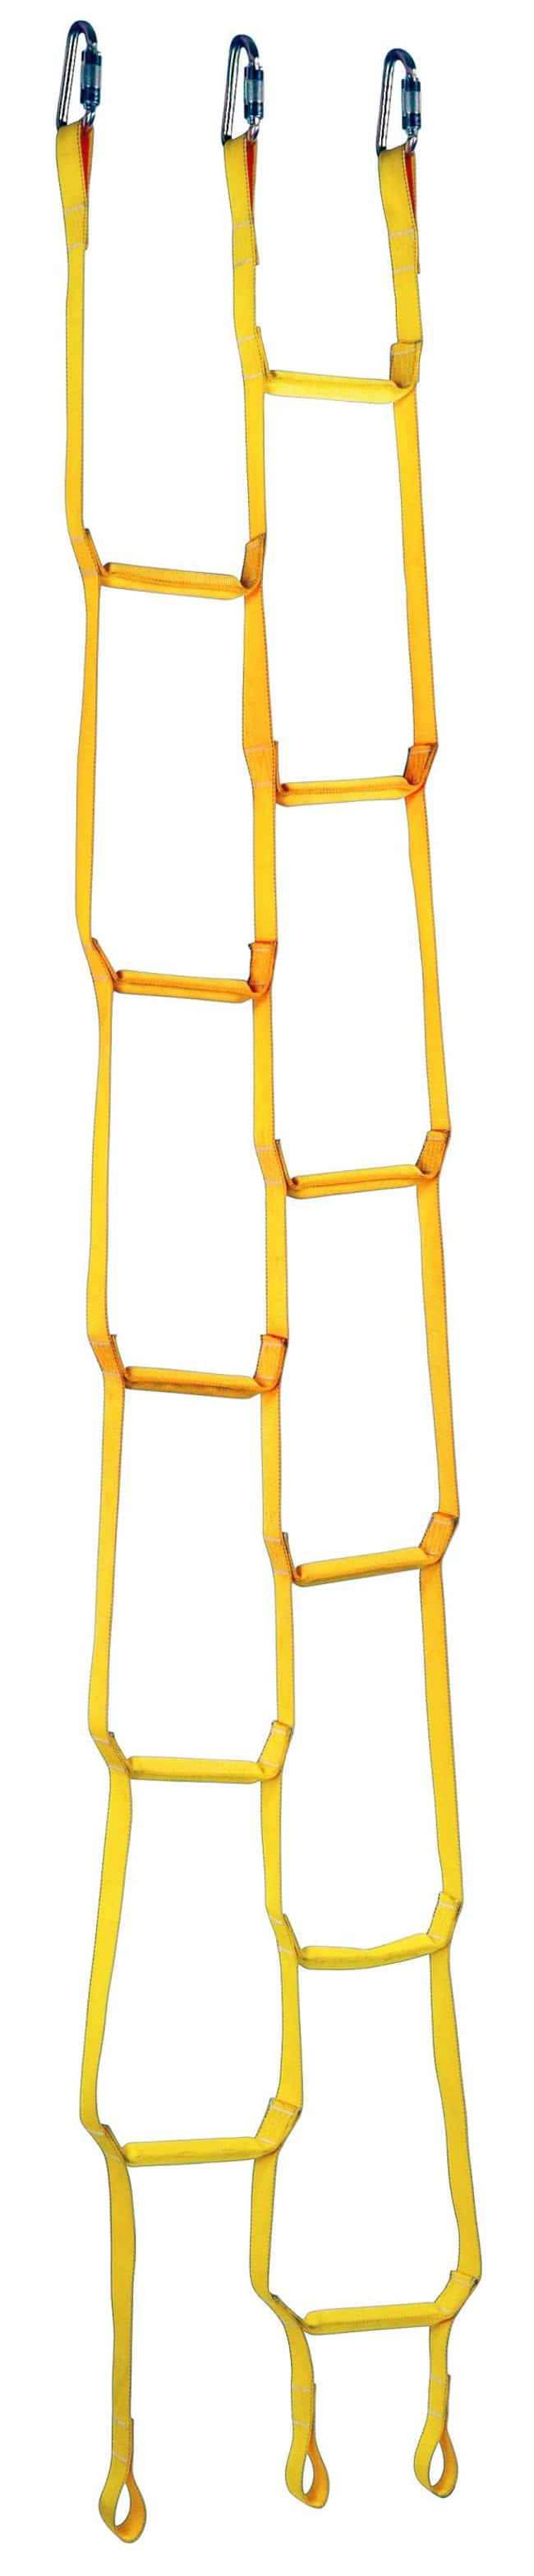 3M DBI-SALA Rollgliss Rescue Ladder 8 ft.:Gloves, Glasses and Safety